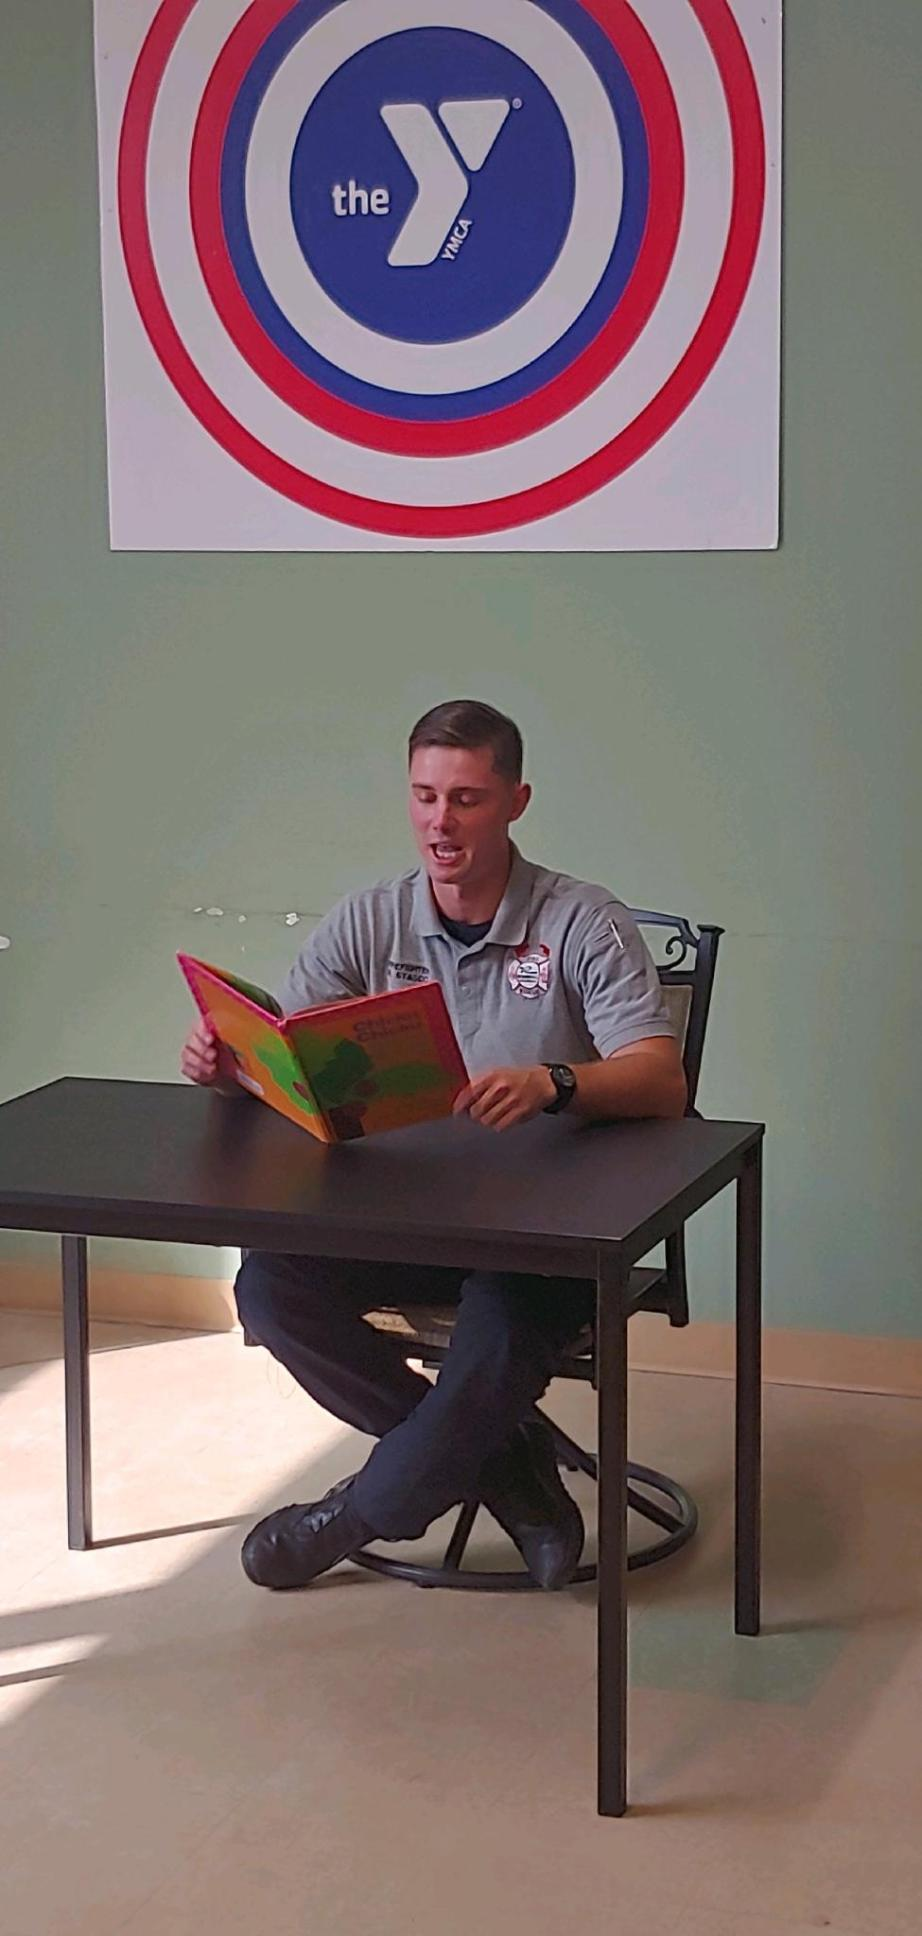 A man reads from a children's book